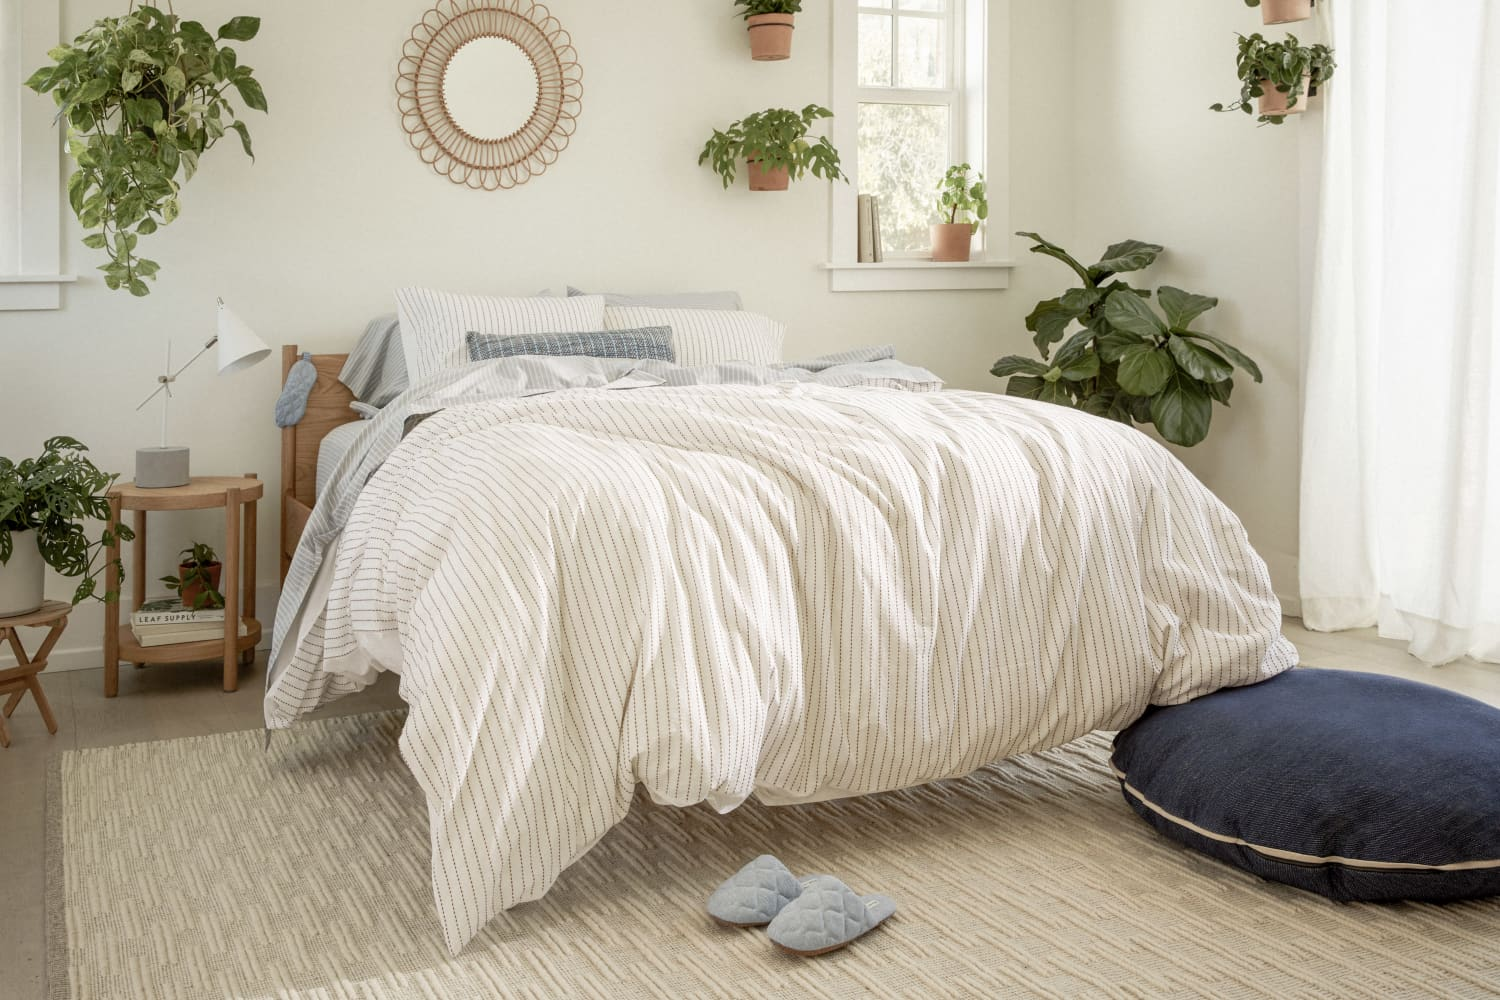 Parachute and Madewell Just Launched a Sleep Collection That's Equal Parts Comfy and Stylish